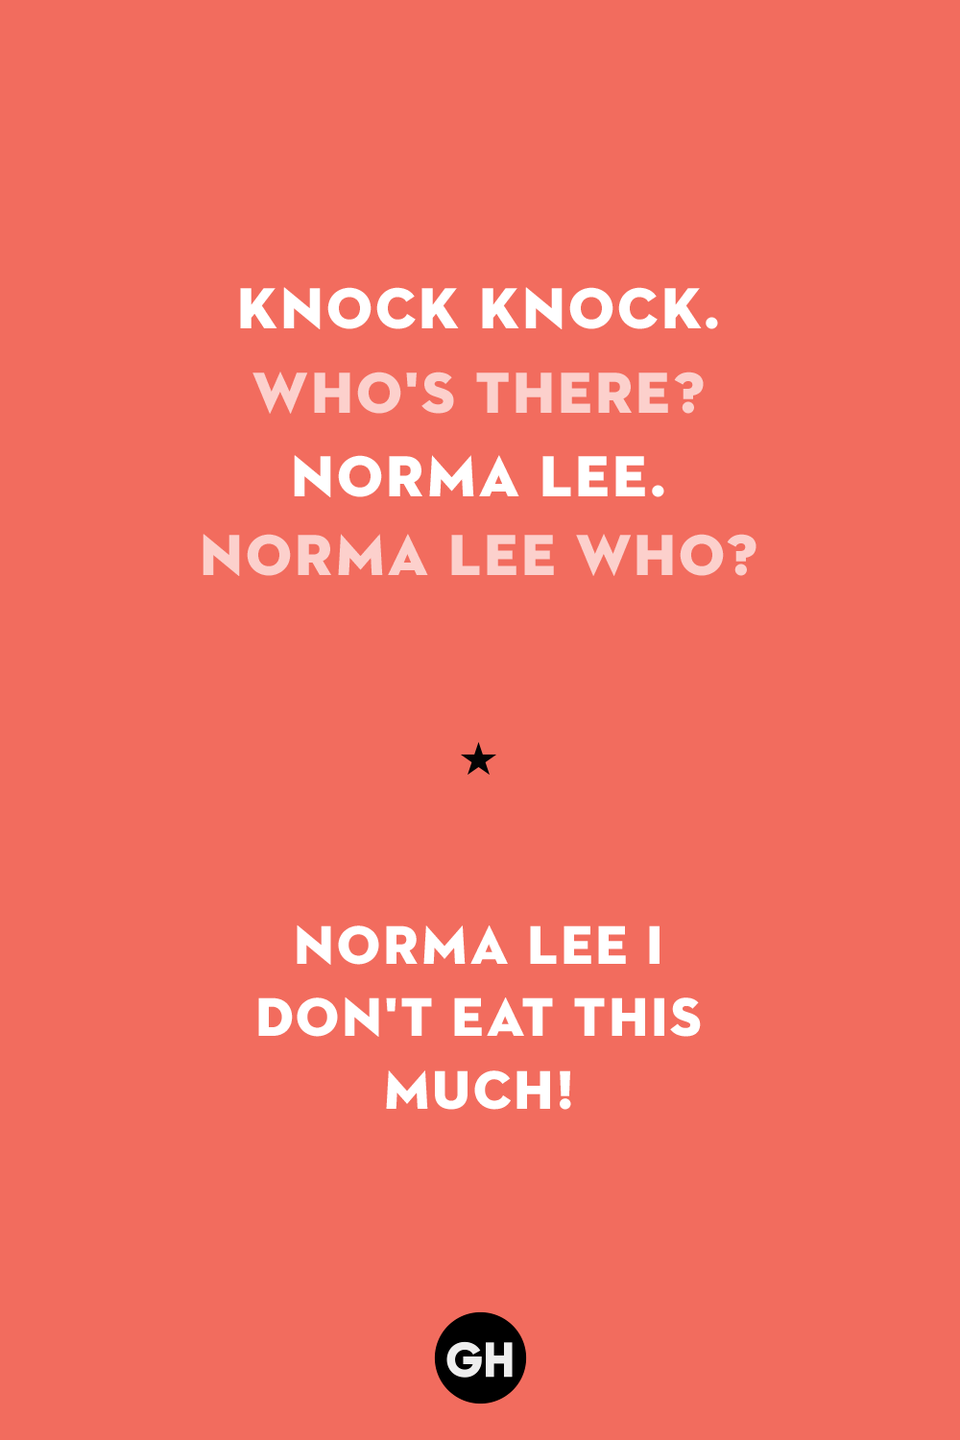 <p>Norma Lee who? Norma Lee I don't eat this much!<br></p>